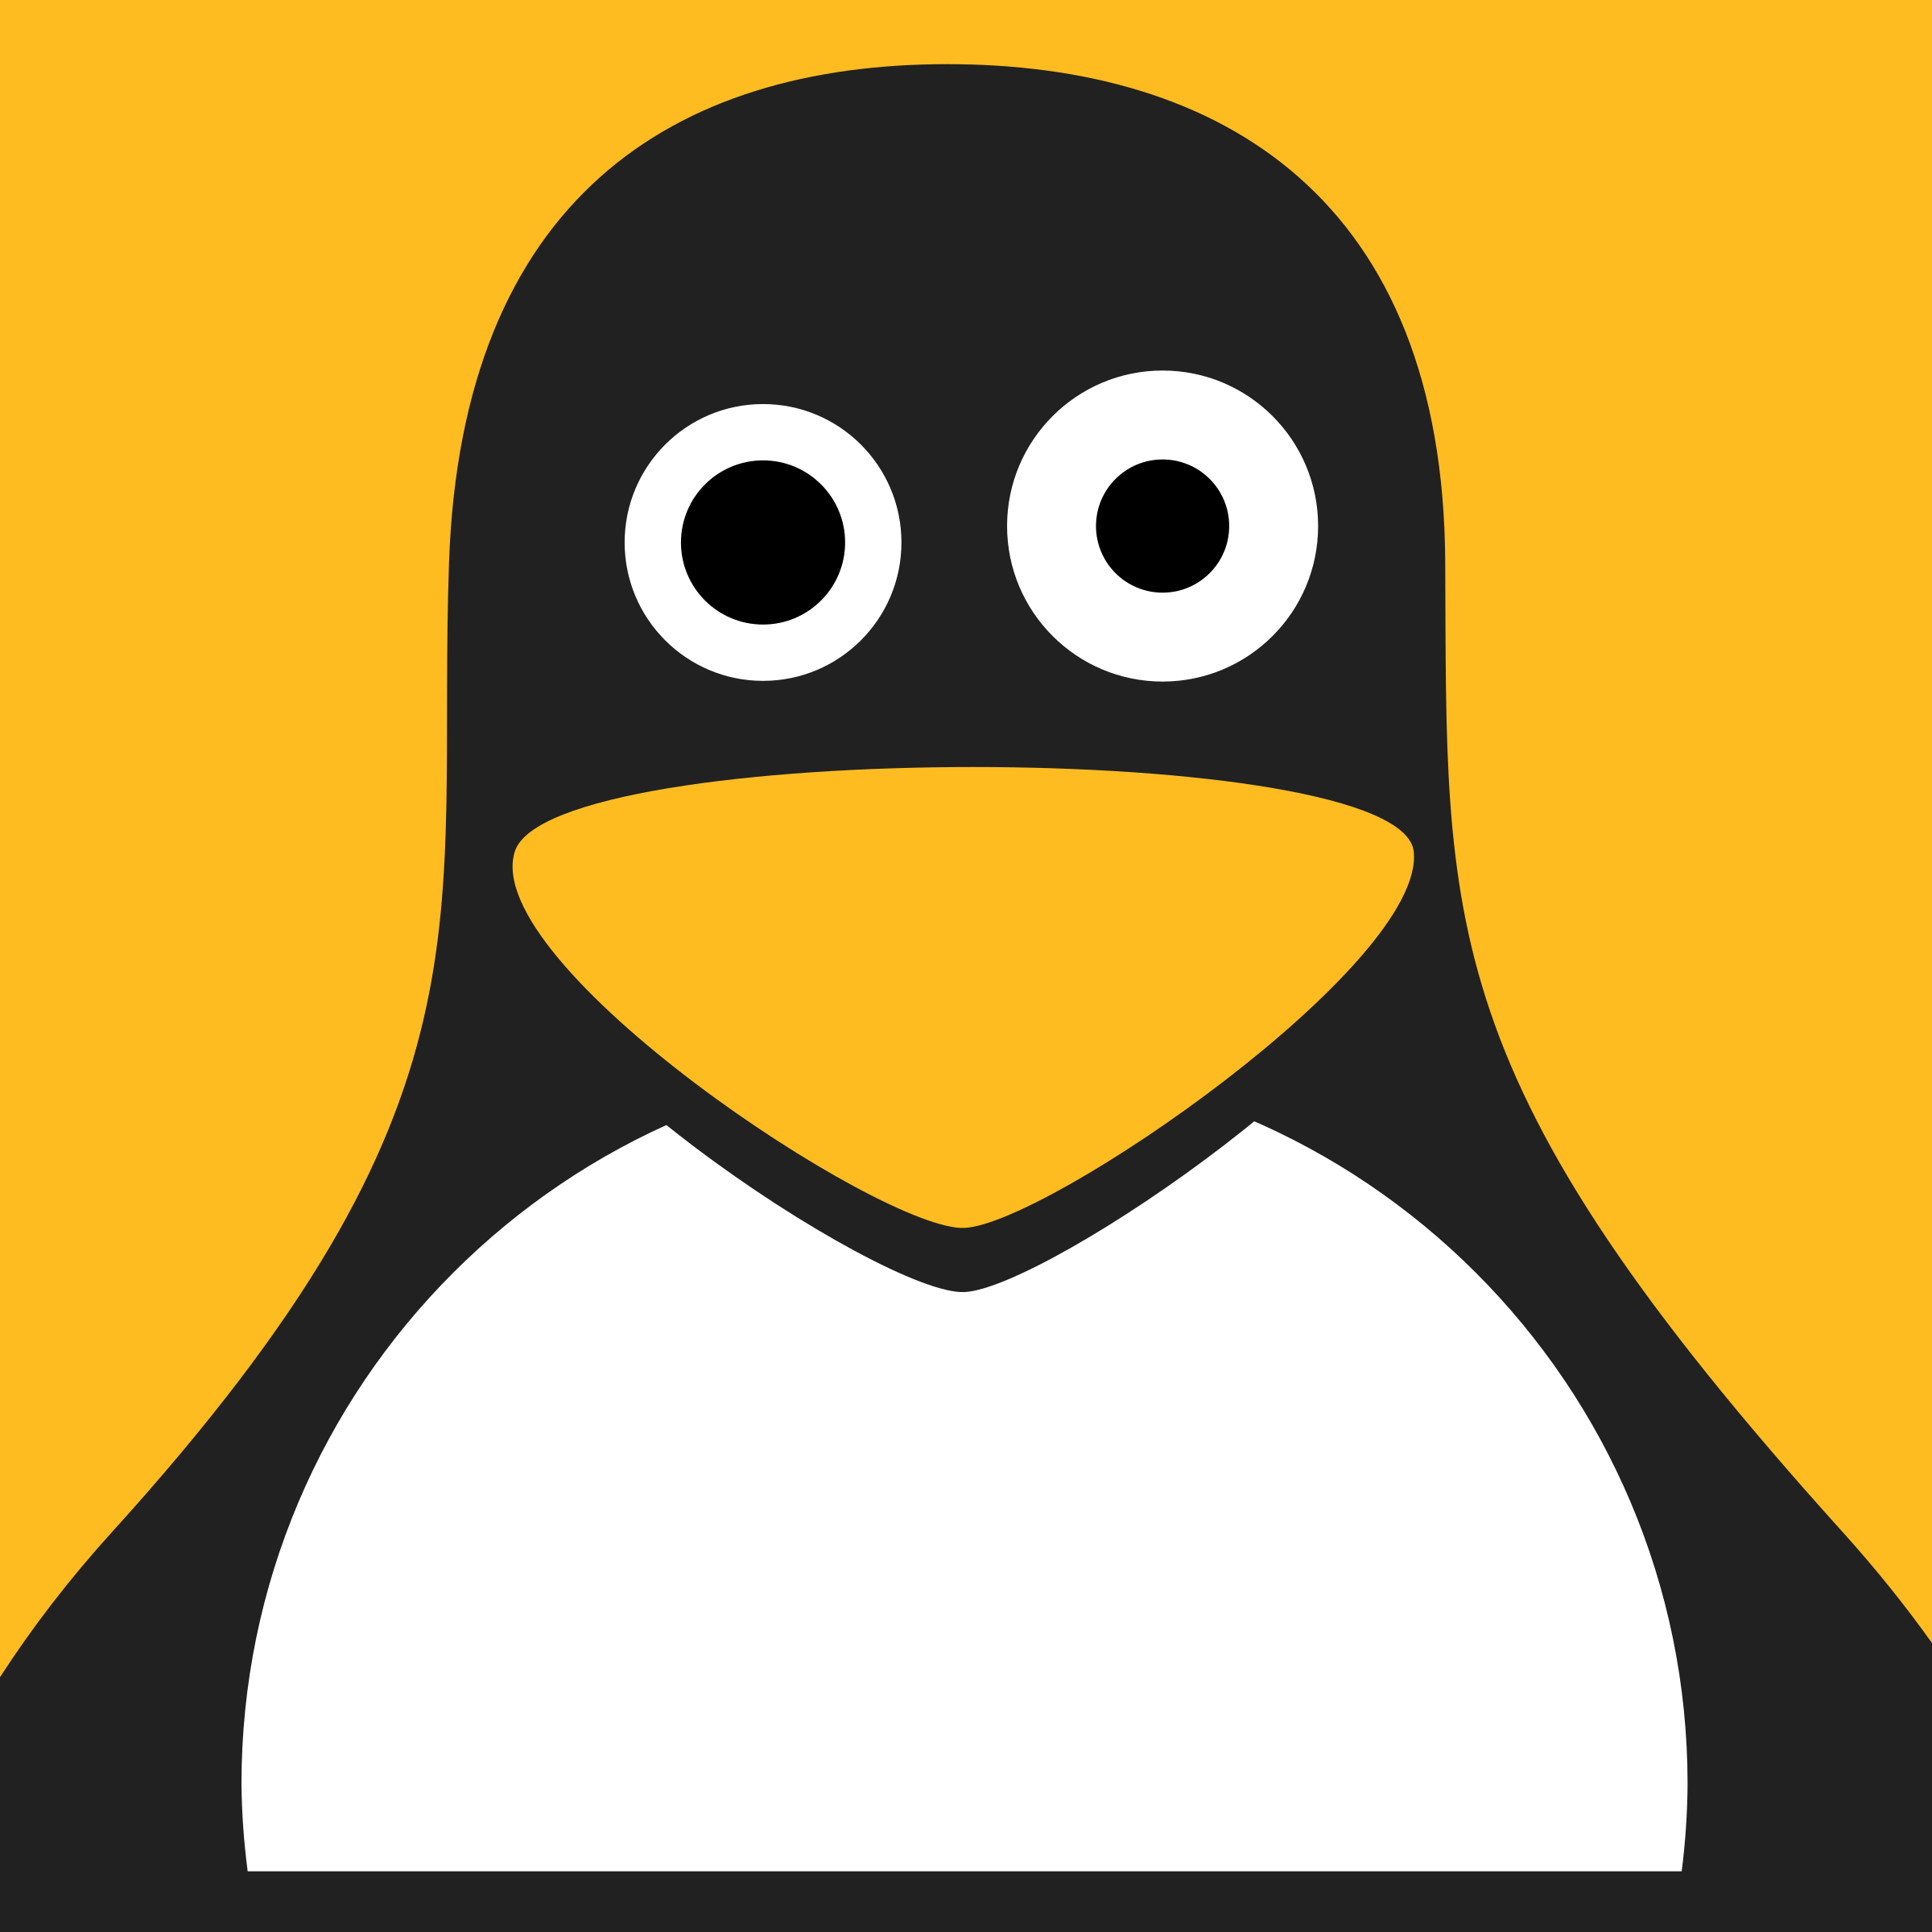 Linux clipart #14, Download drawings